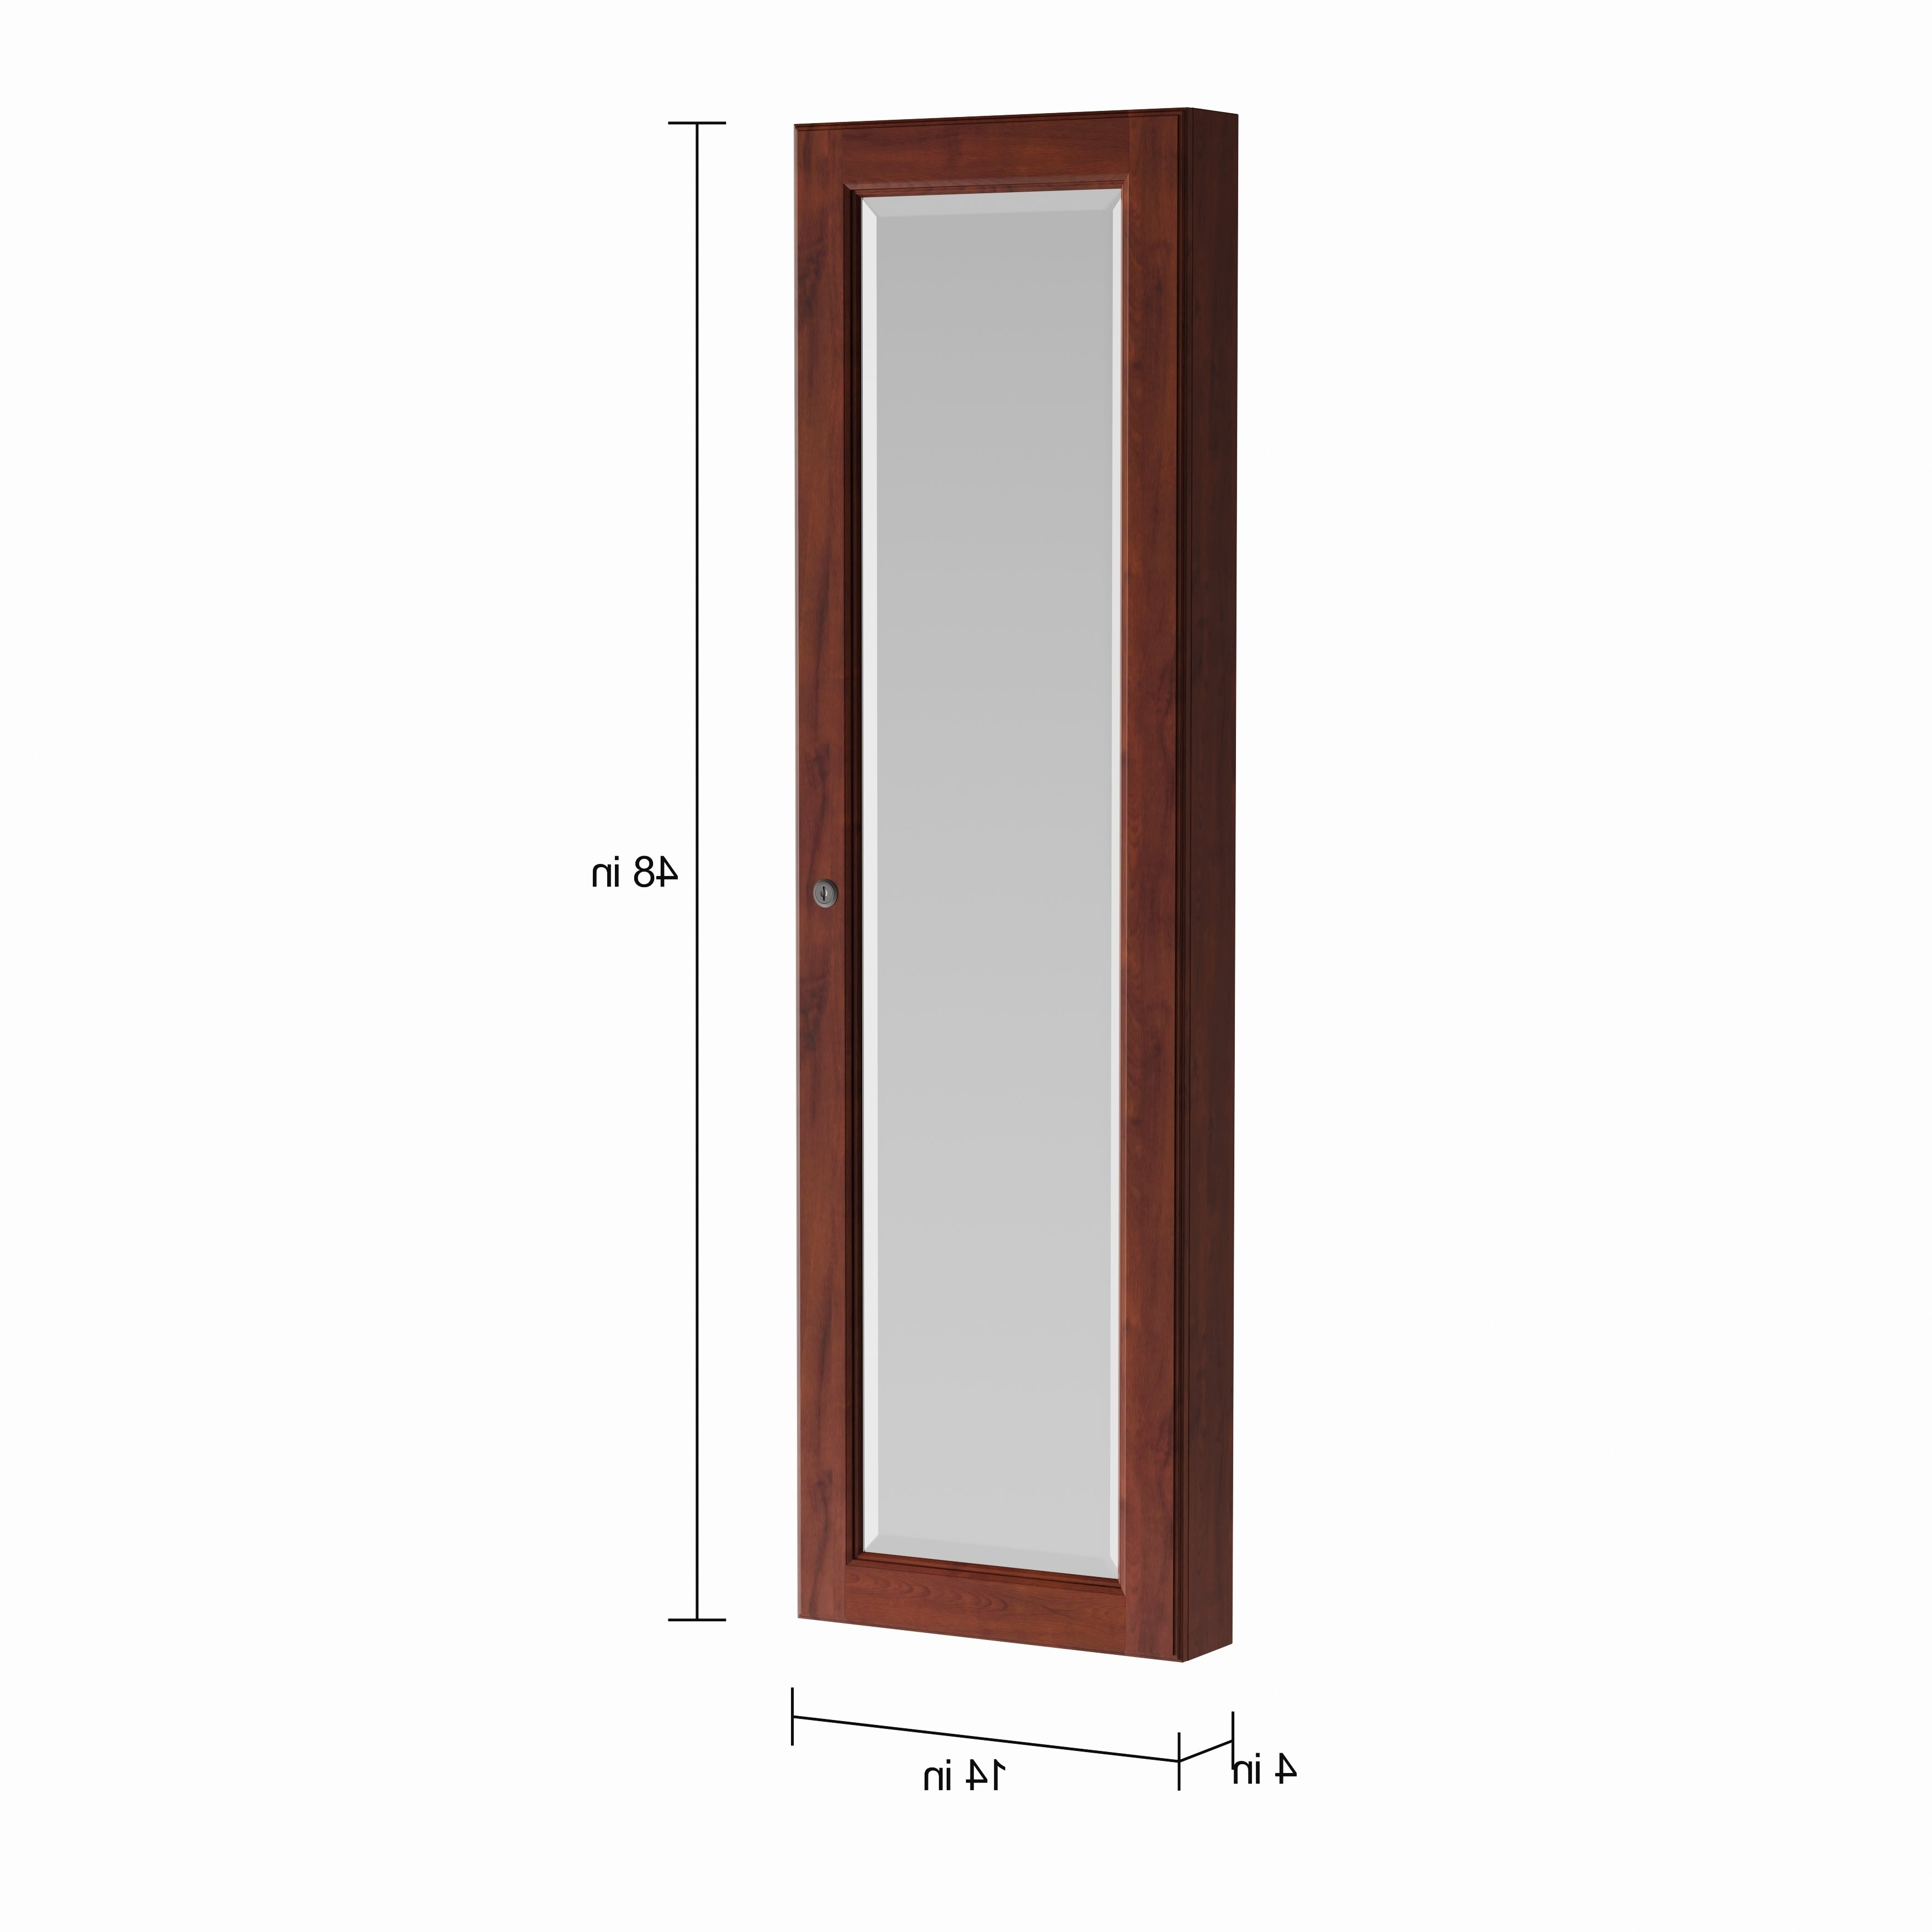 Widely Used Jewelry Wall Mirrors For Copper Grove Galax Wall Mount Burgundy Cherry Jewelry Mirror (View 20 of 20)